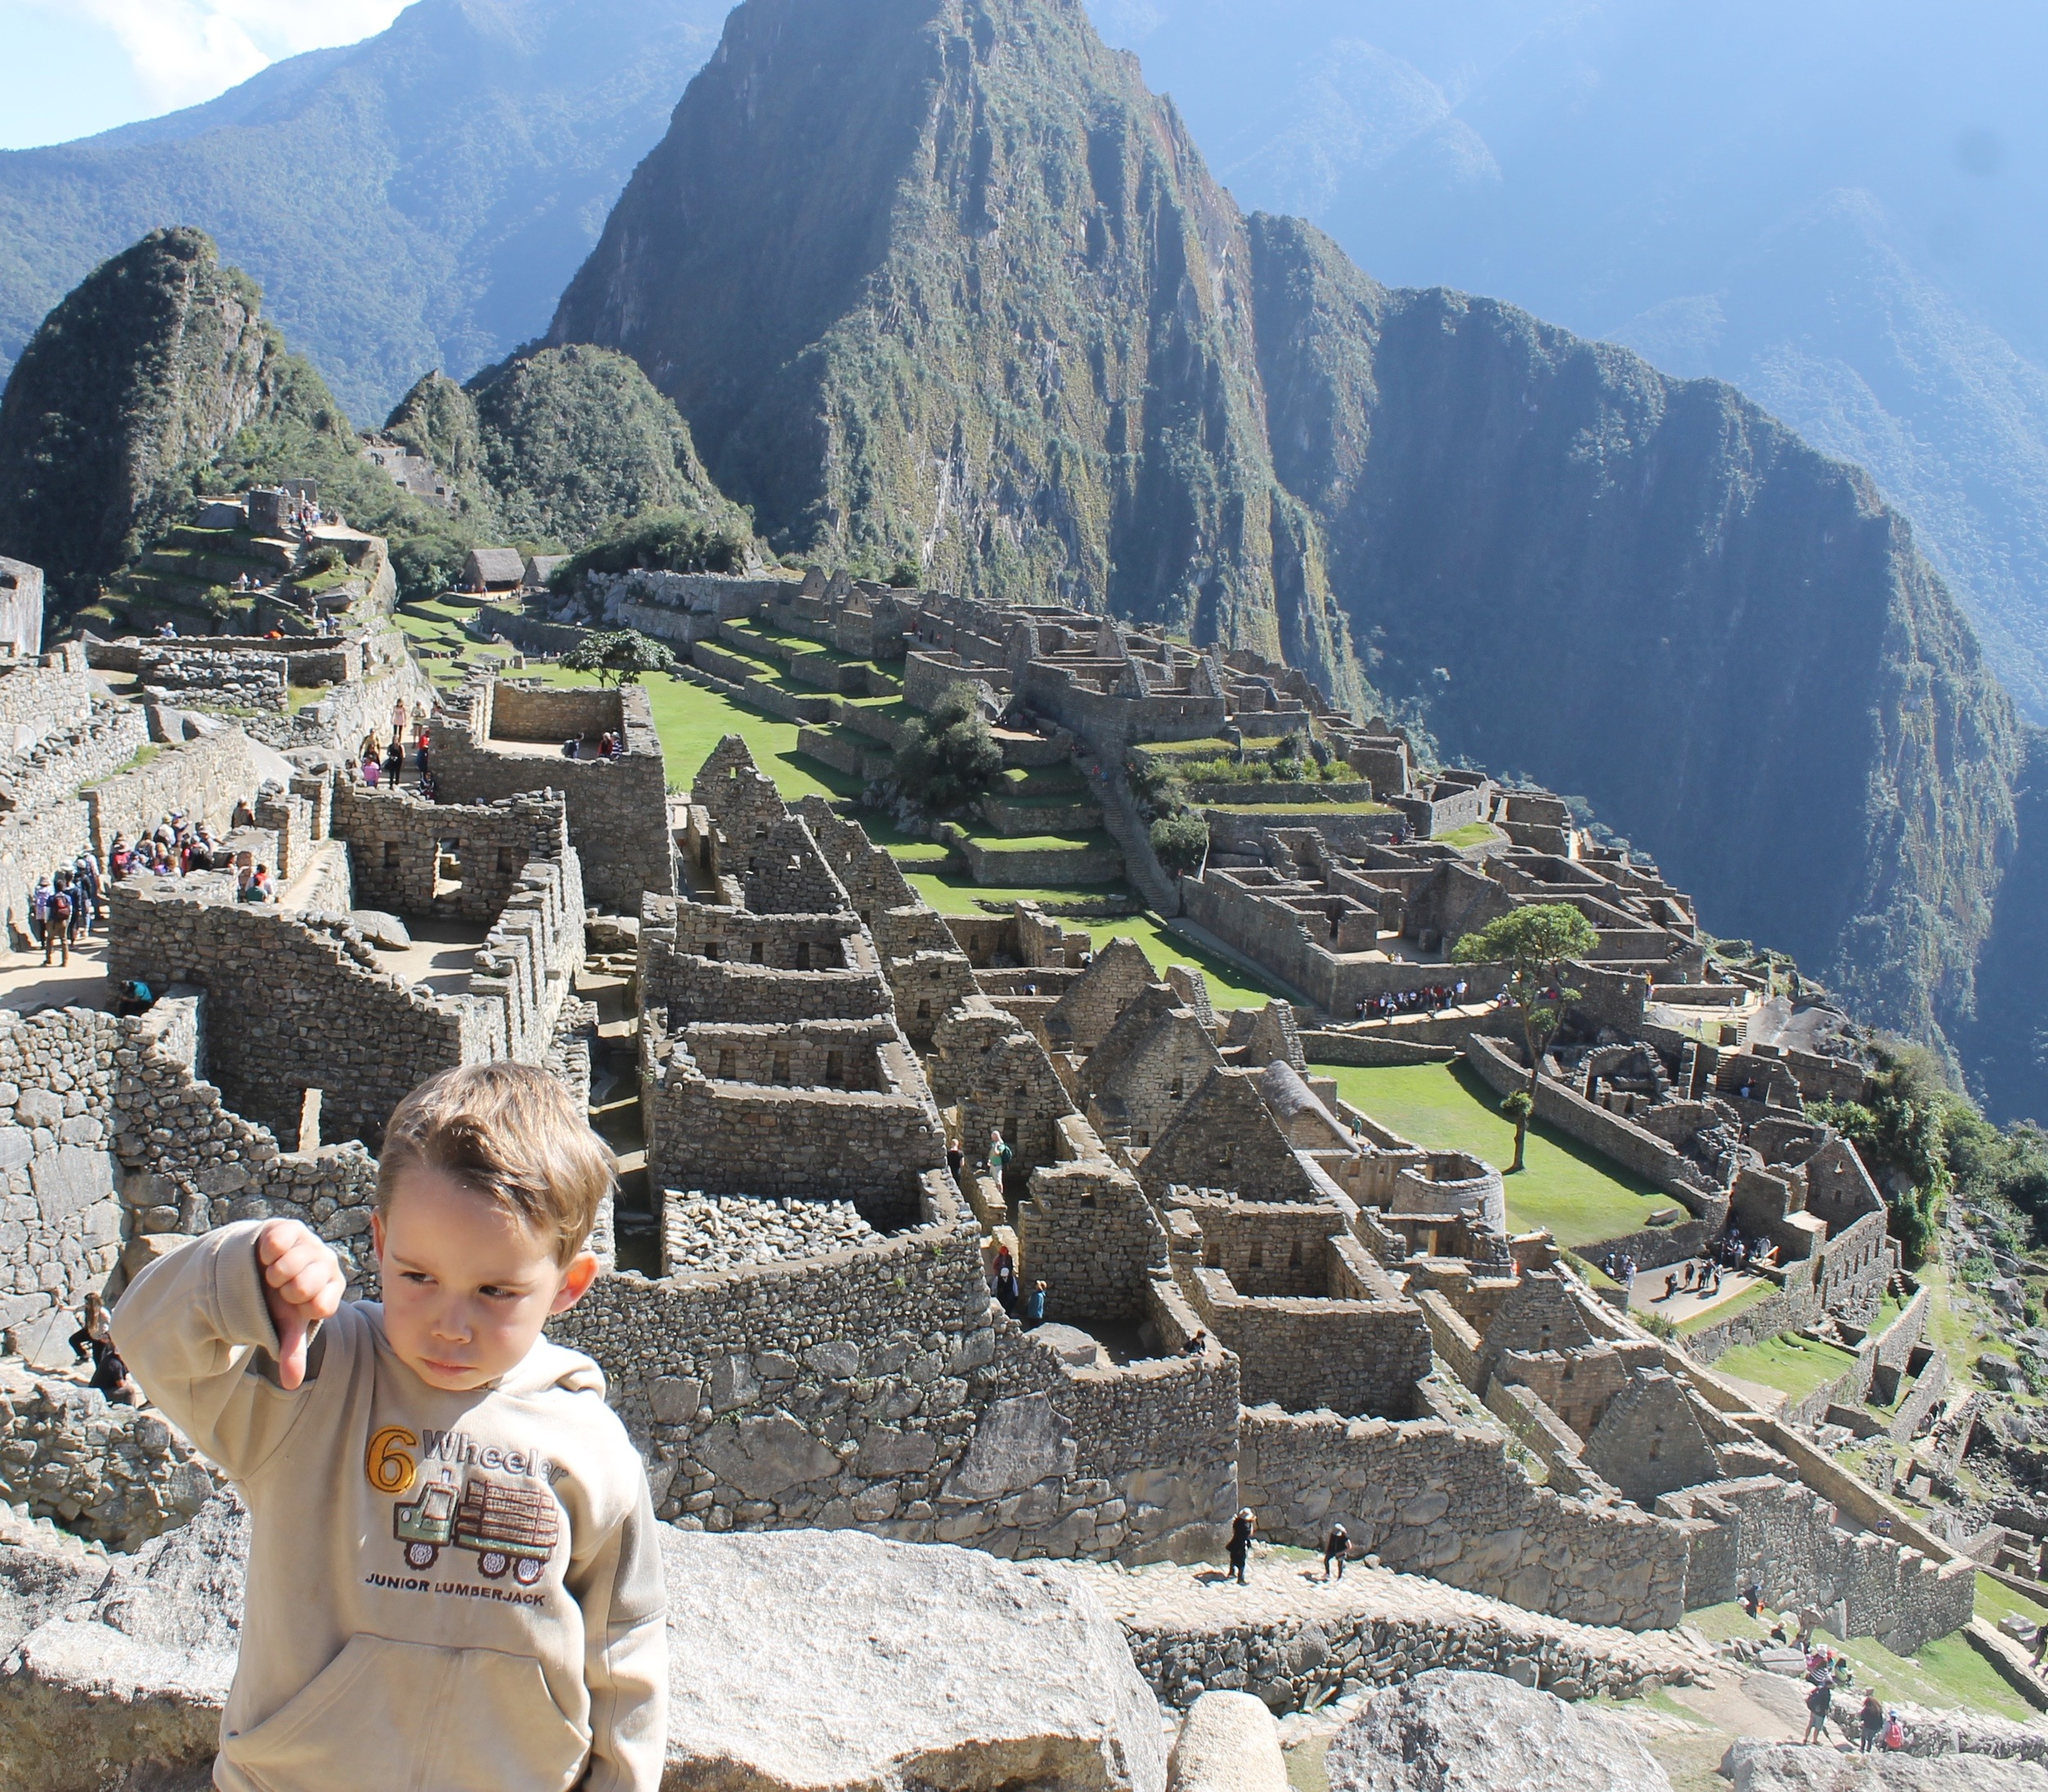 Kaleb's impression of Machu Picchu! He wasn't quite so impressed by all the walking around big stones and being hauled up the hills!